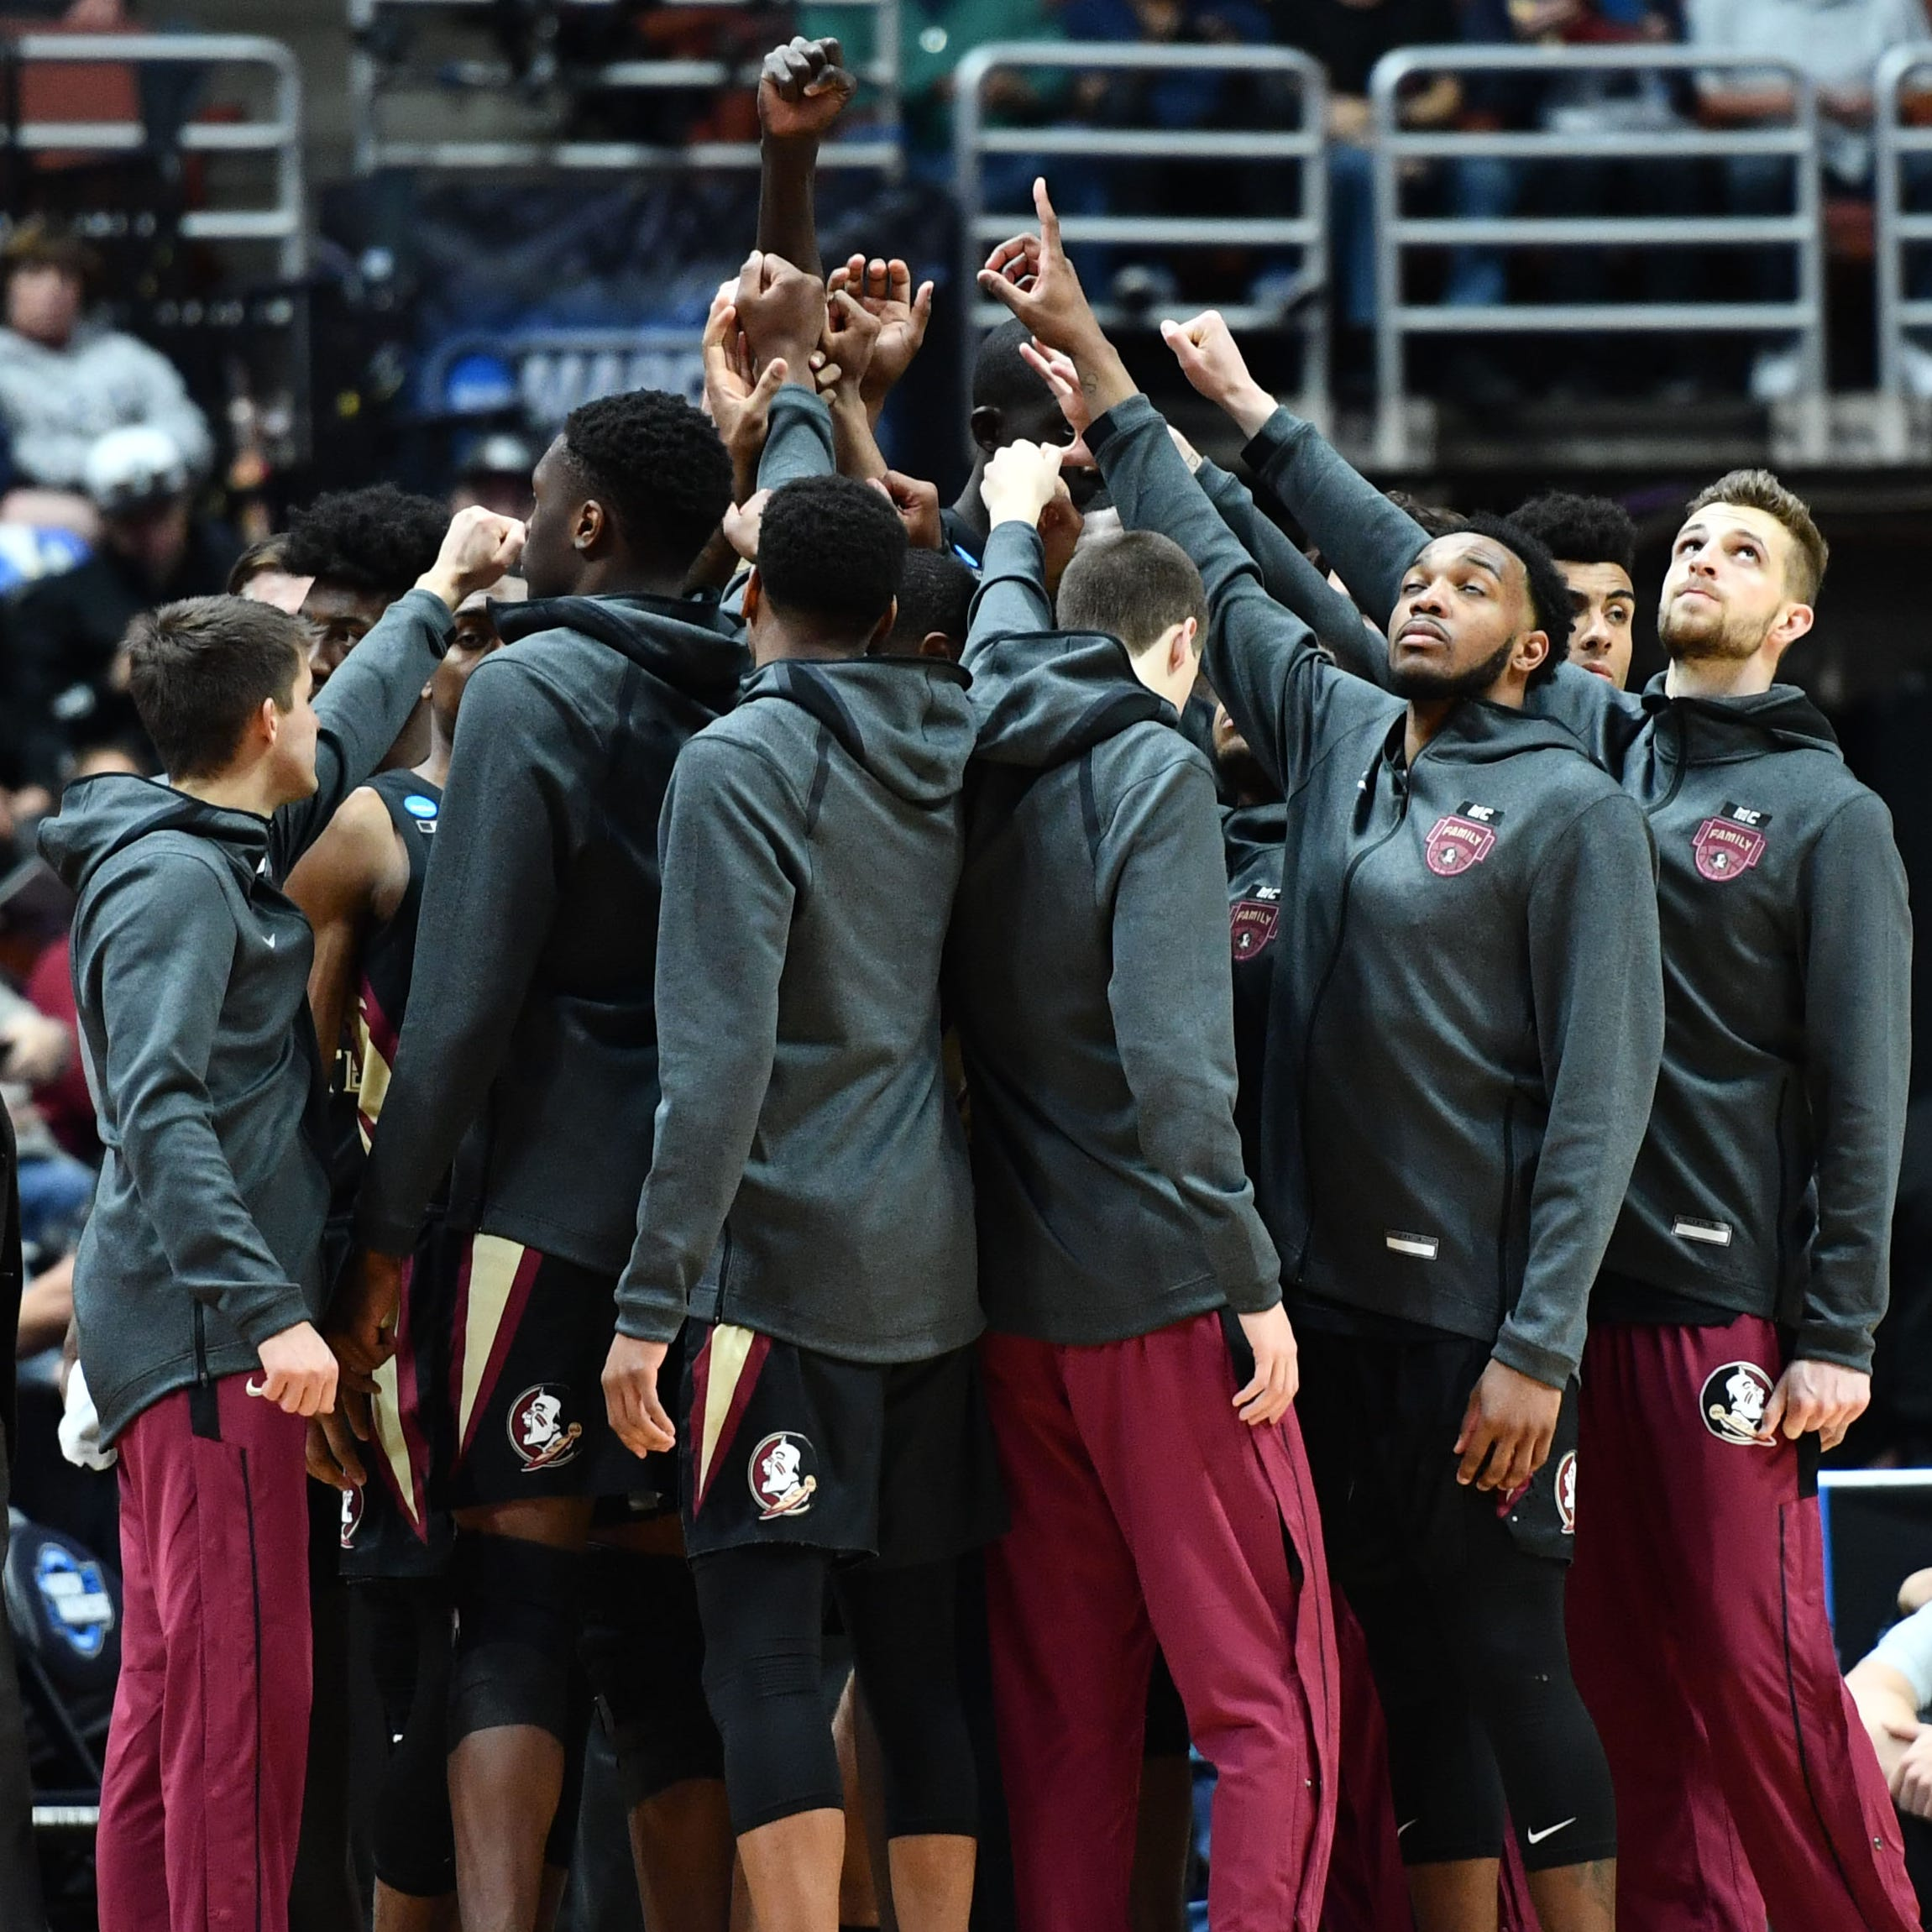 Florida State players gather before playing against Gonzaga.